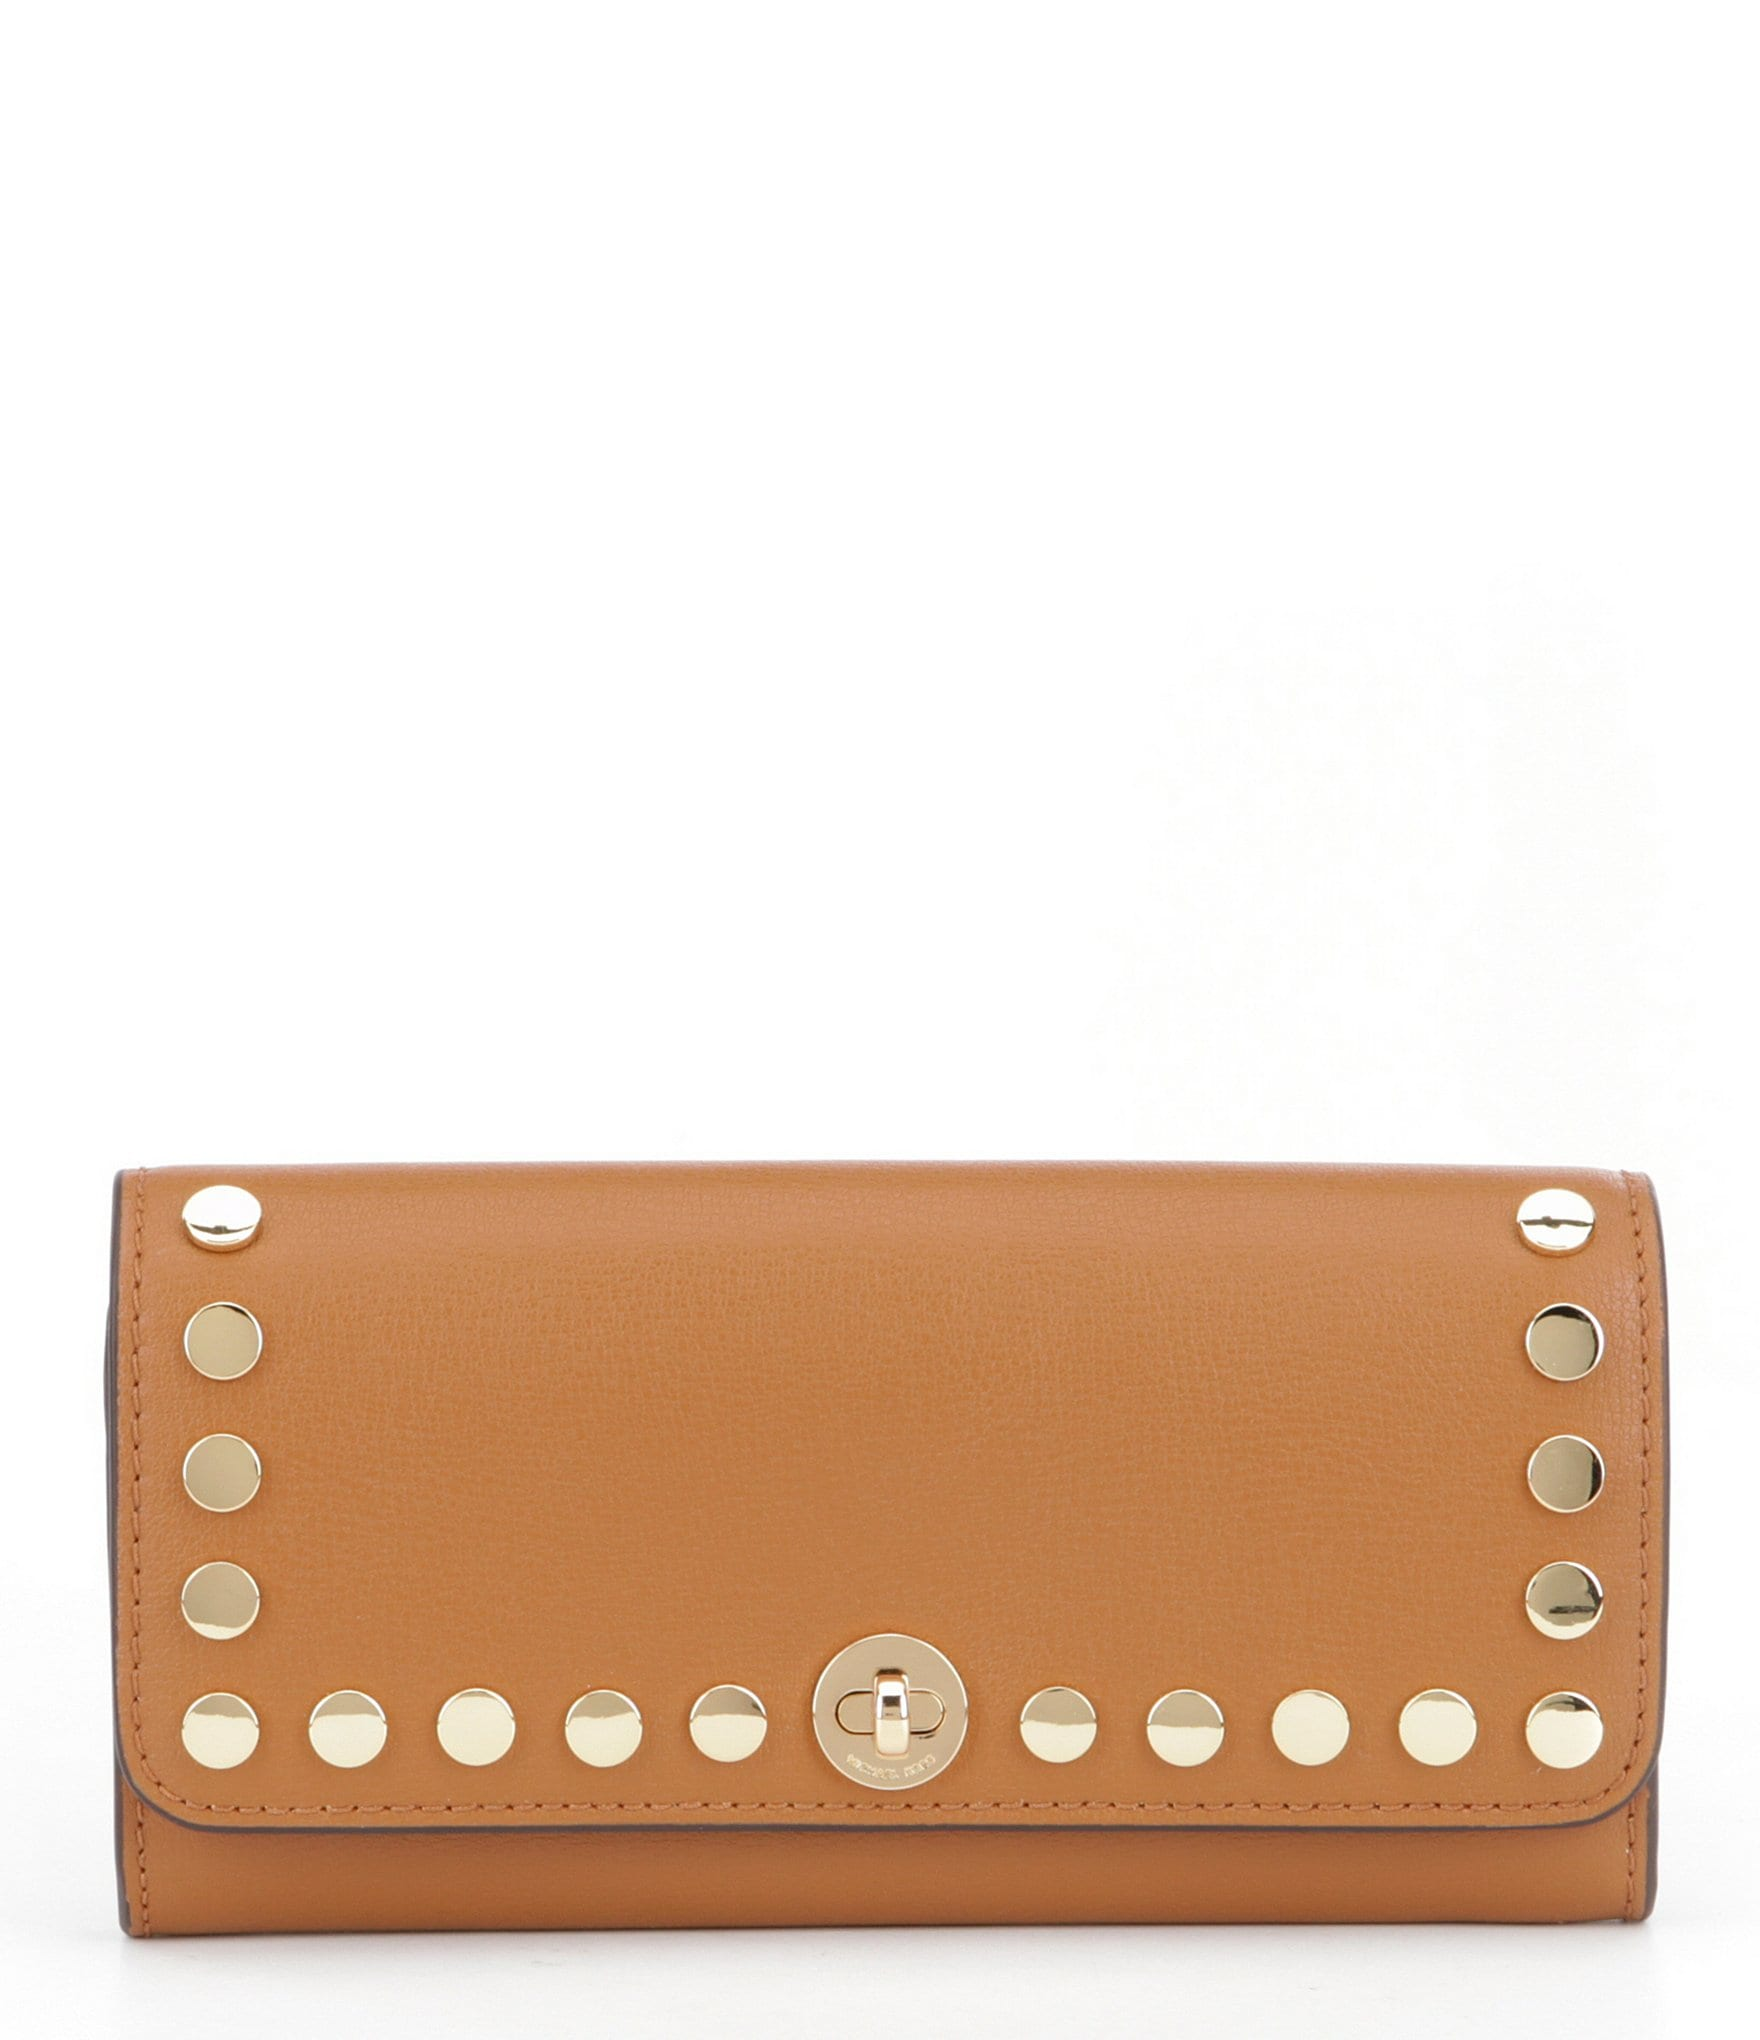 fcdb5b082c6a Michael Kors White Studded Wallet At Dillards | Stanford Center for ...